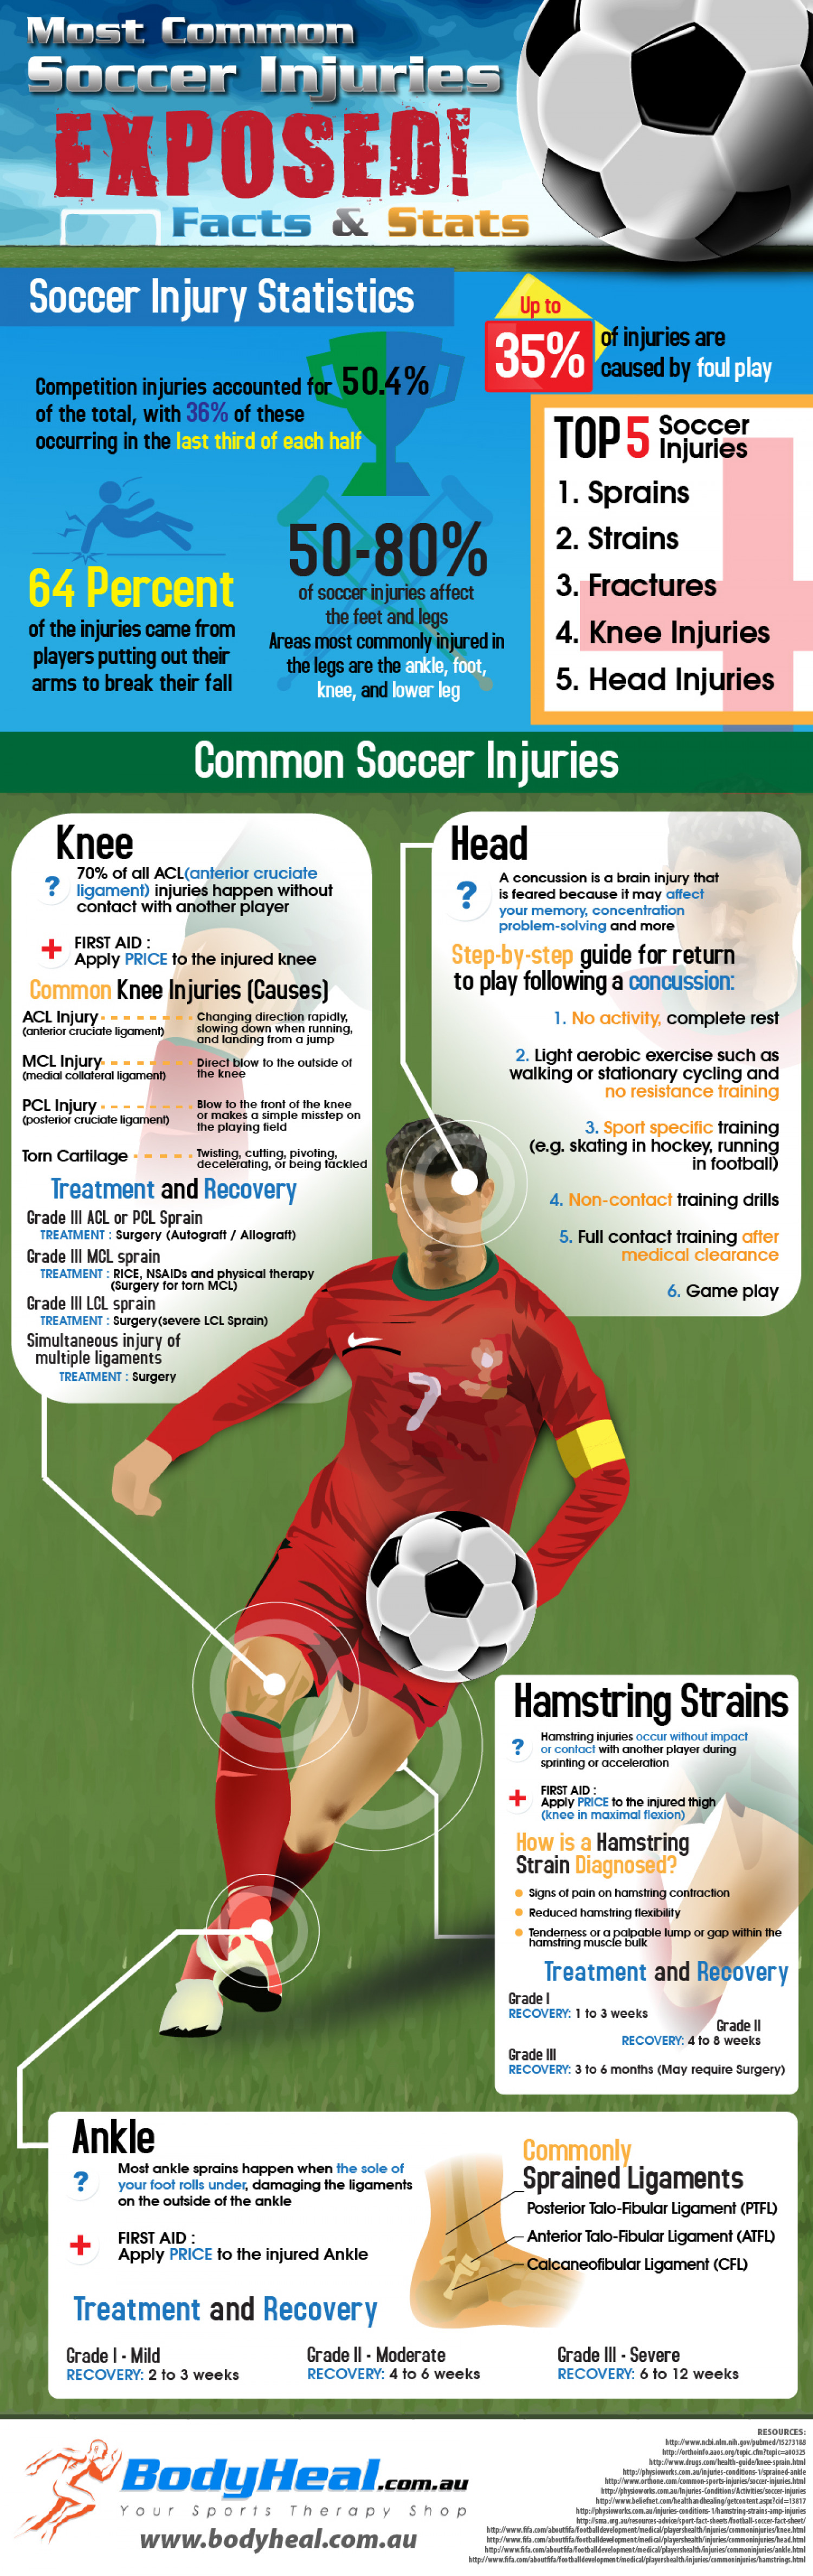 Most Common Soccer Injuries Exposed: Facts & Stats Infographic